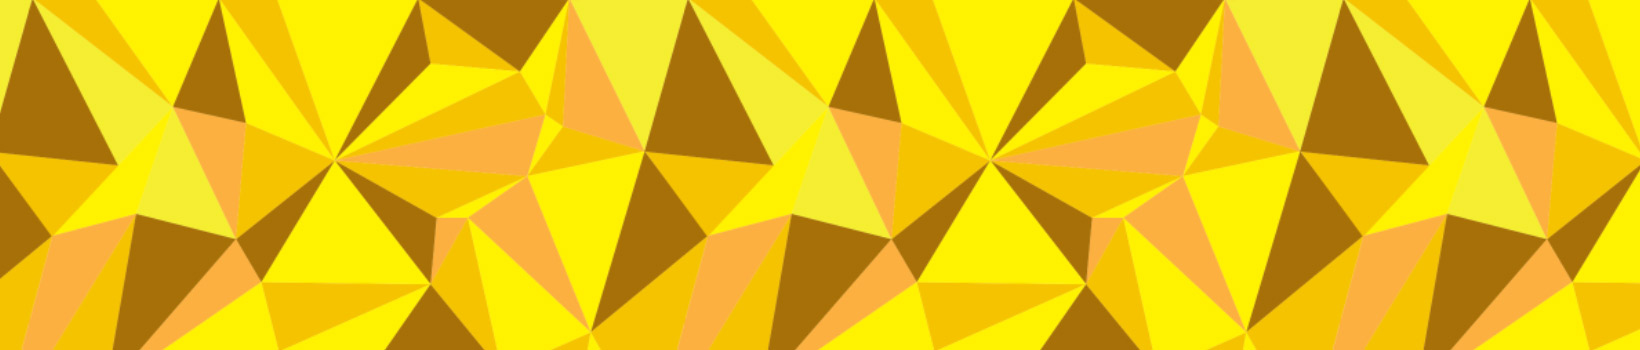 slider_yellow350x1640